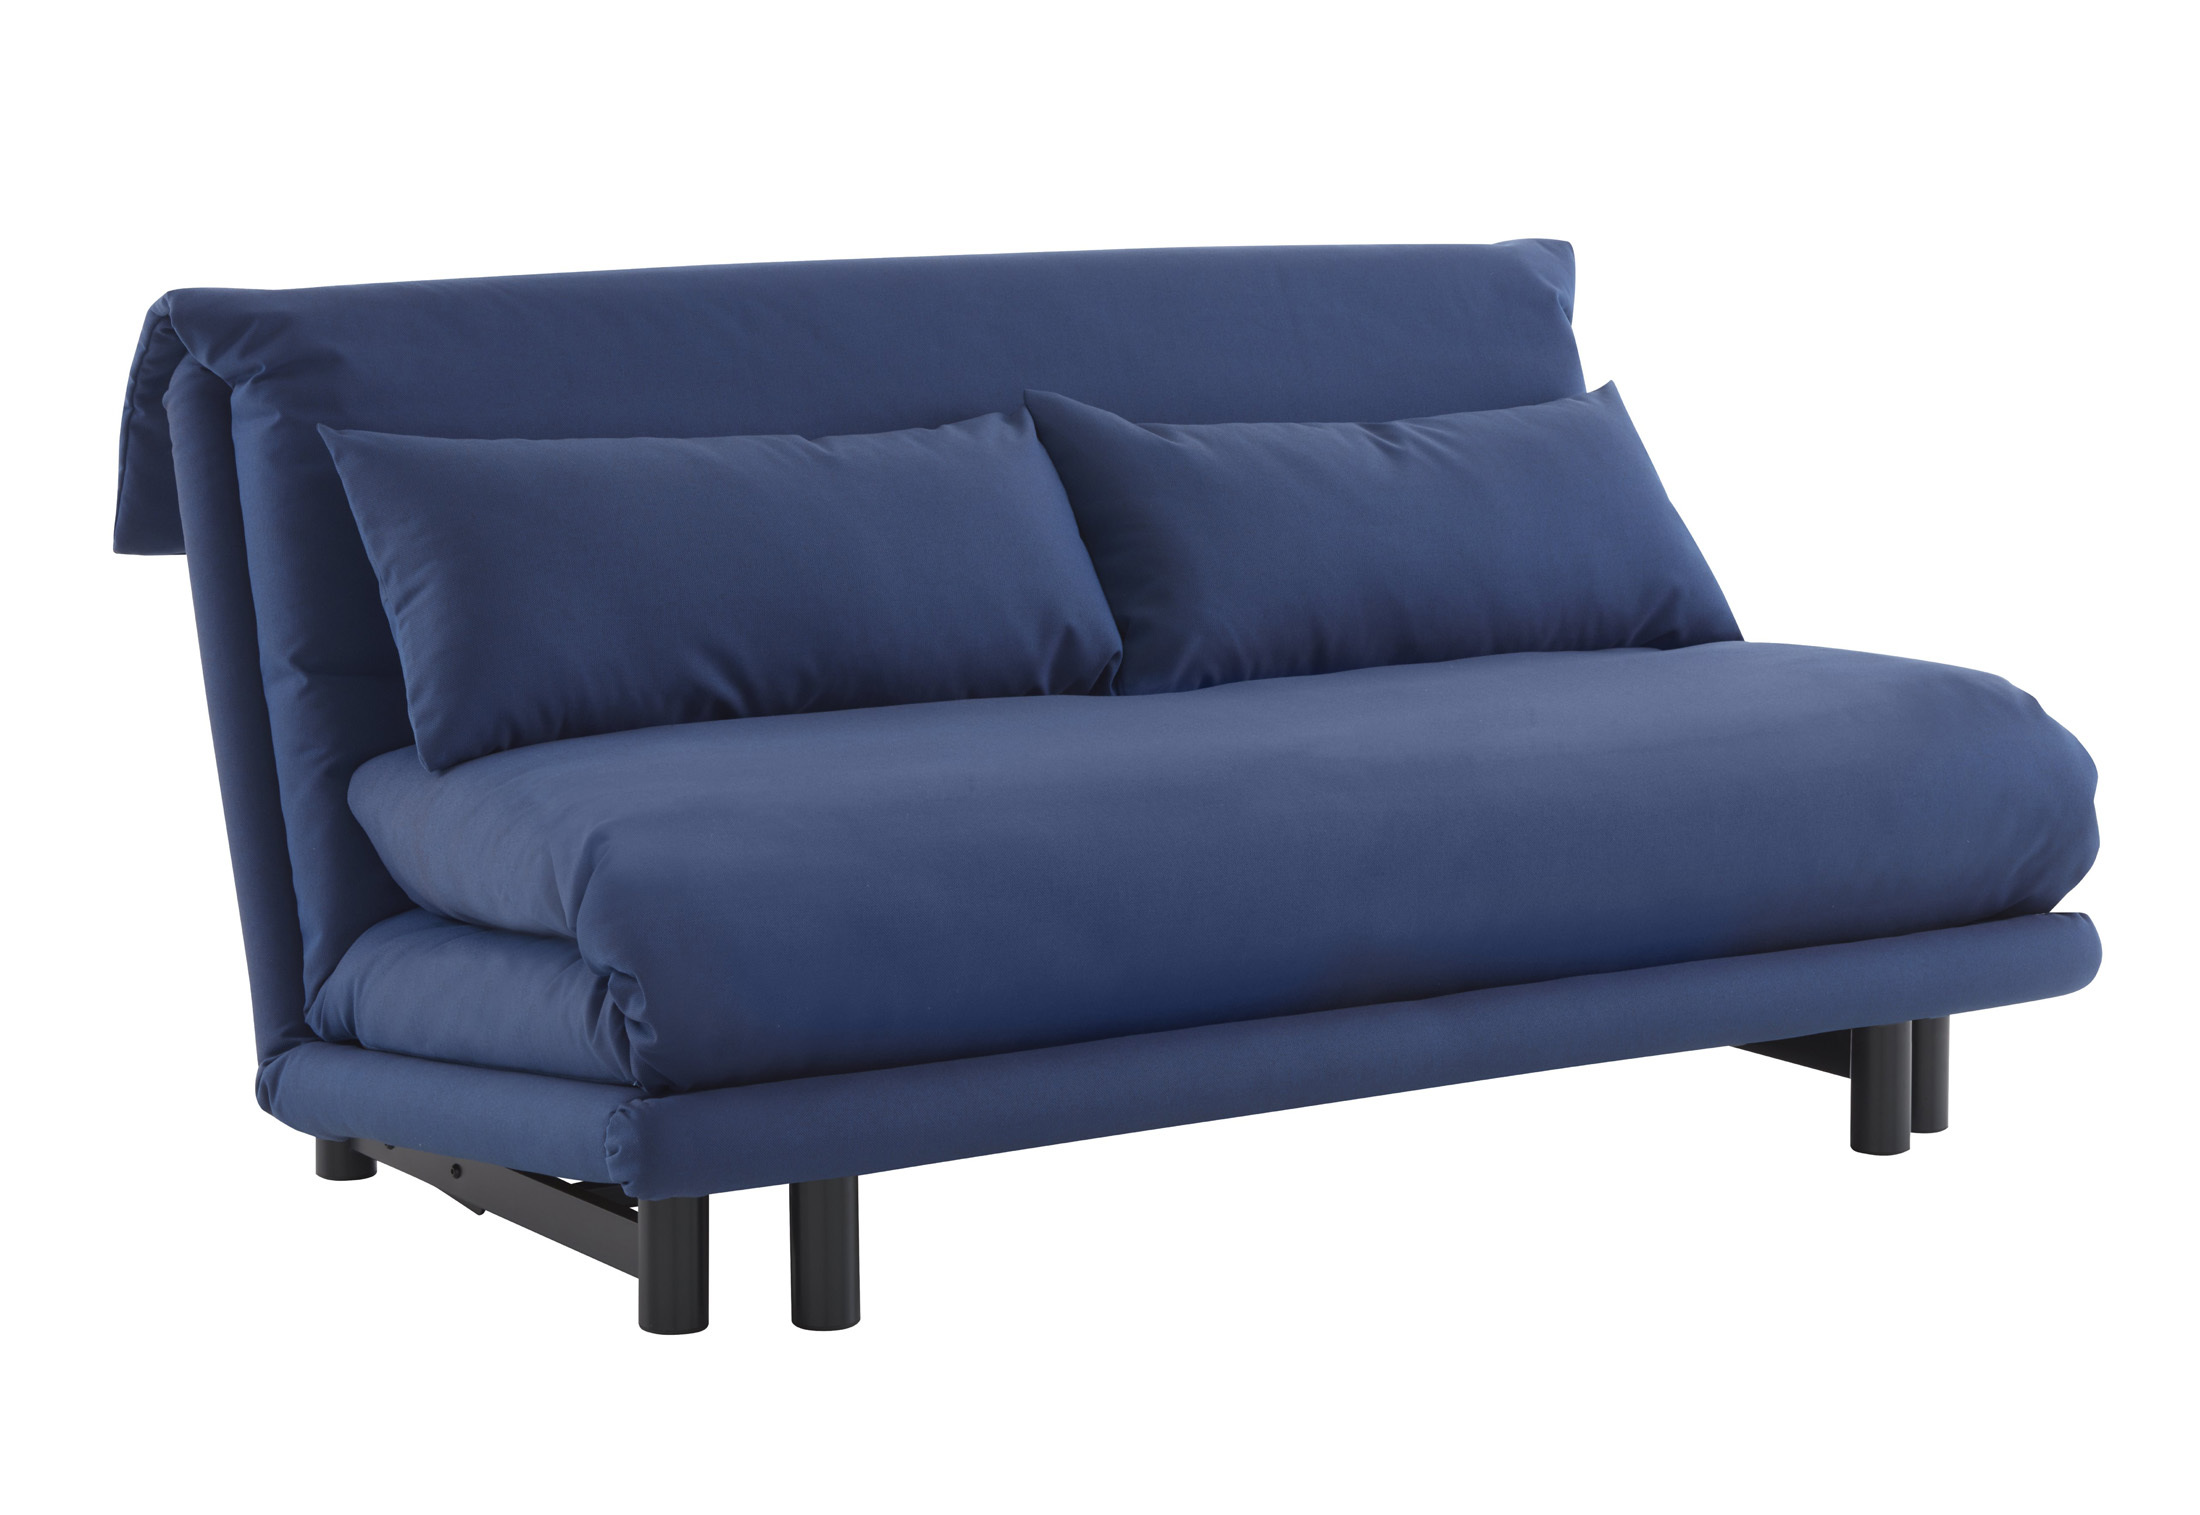 Ligne Roset Multy Sofa Bed Dimensions Sofa Review